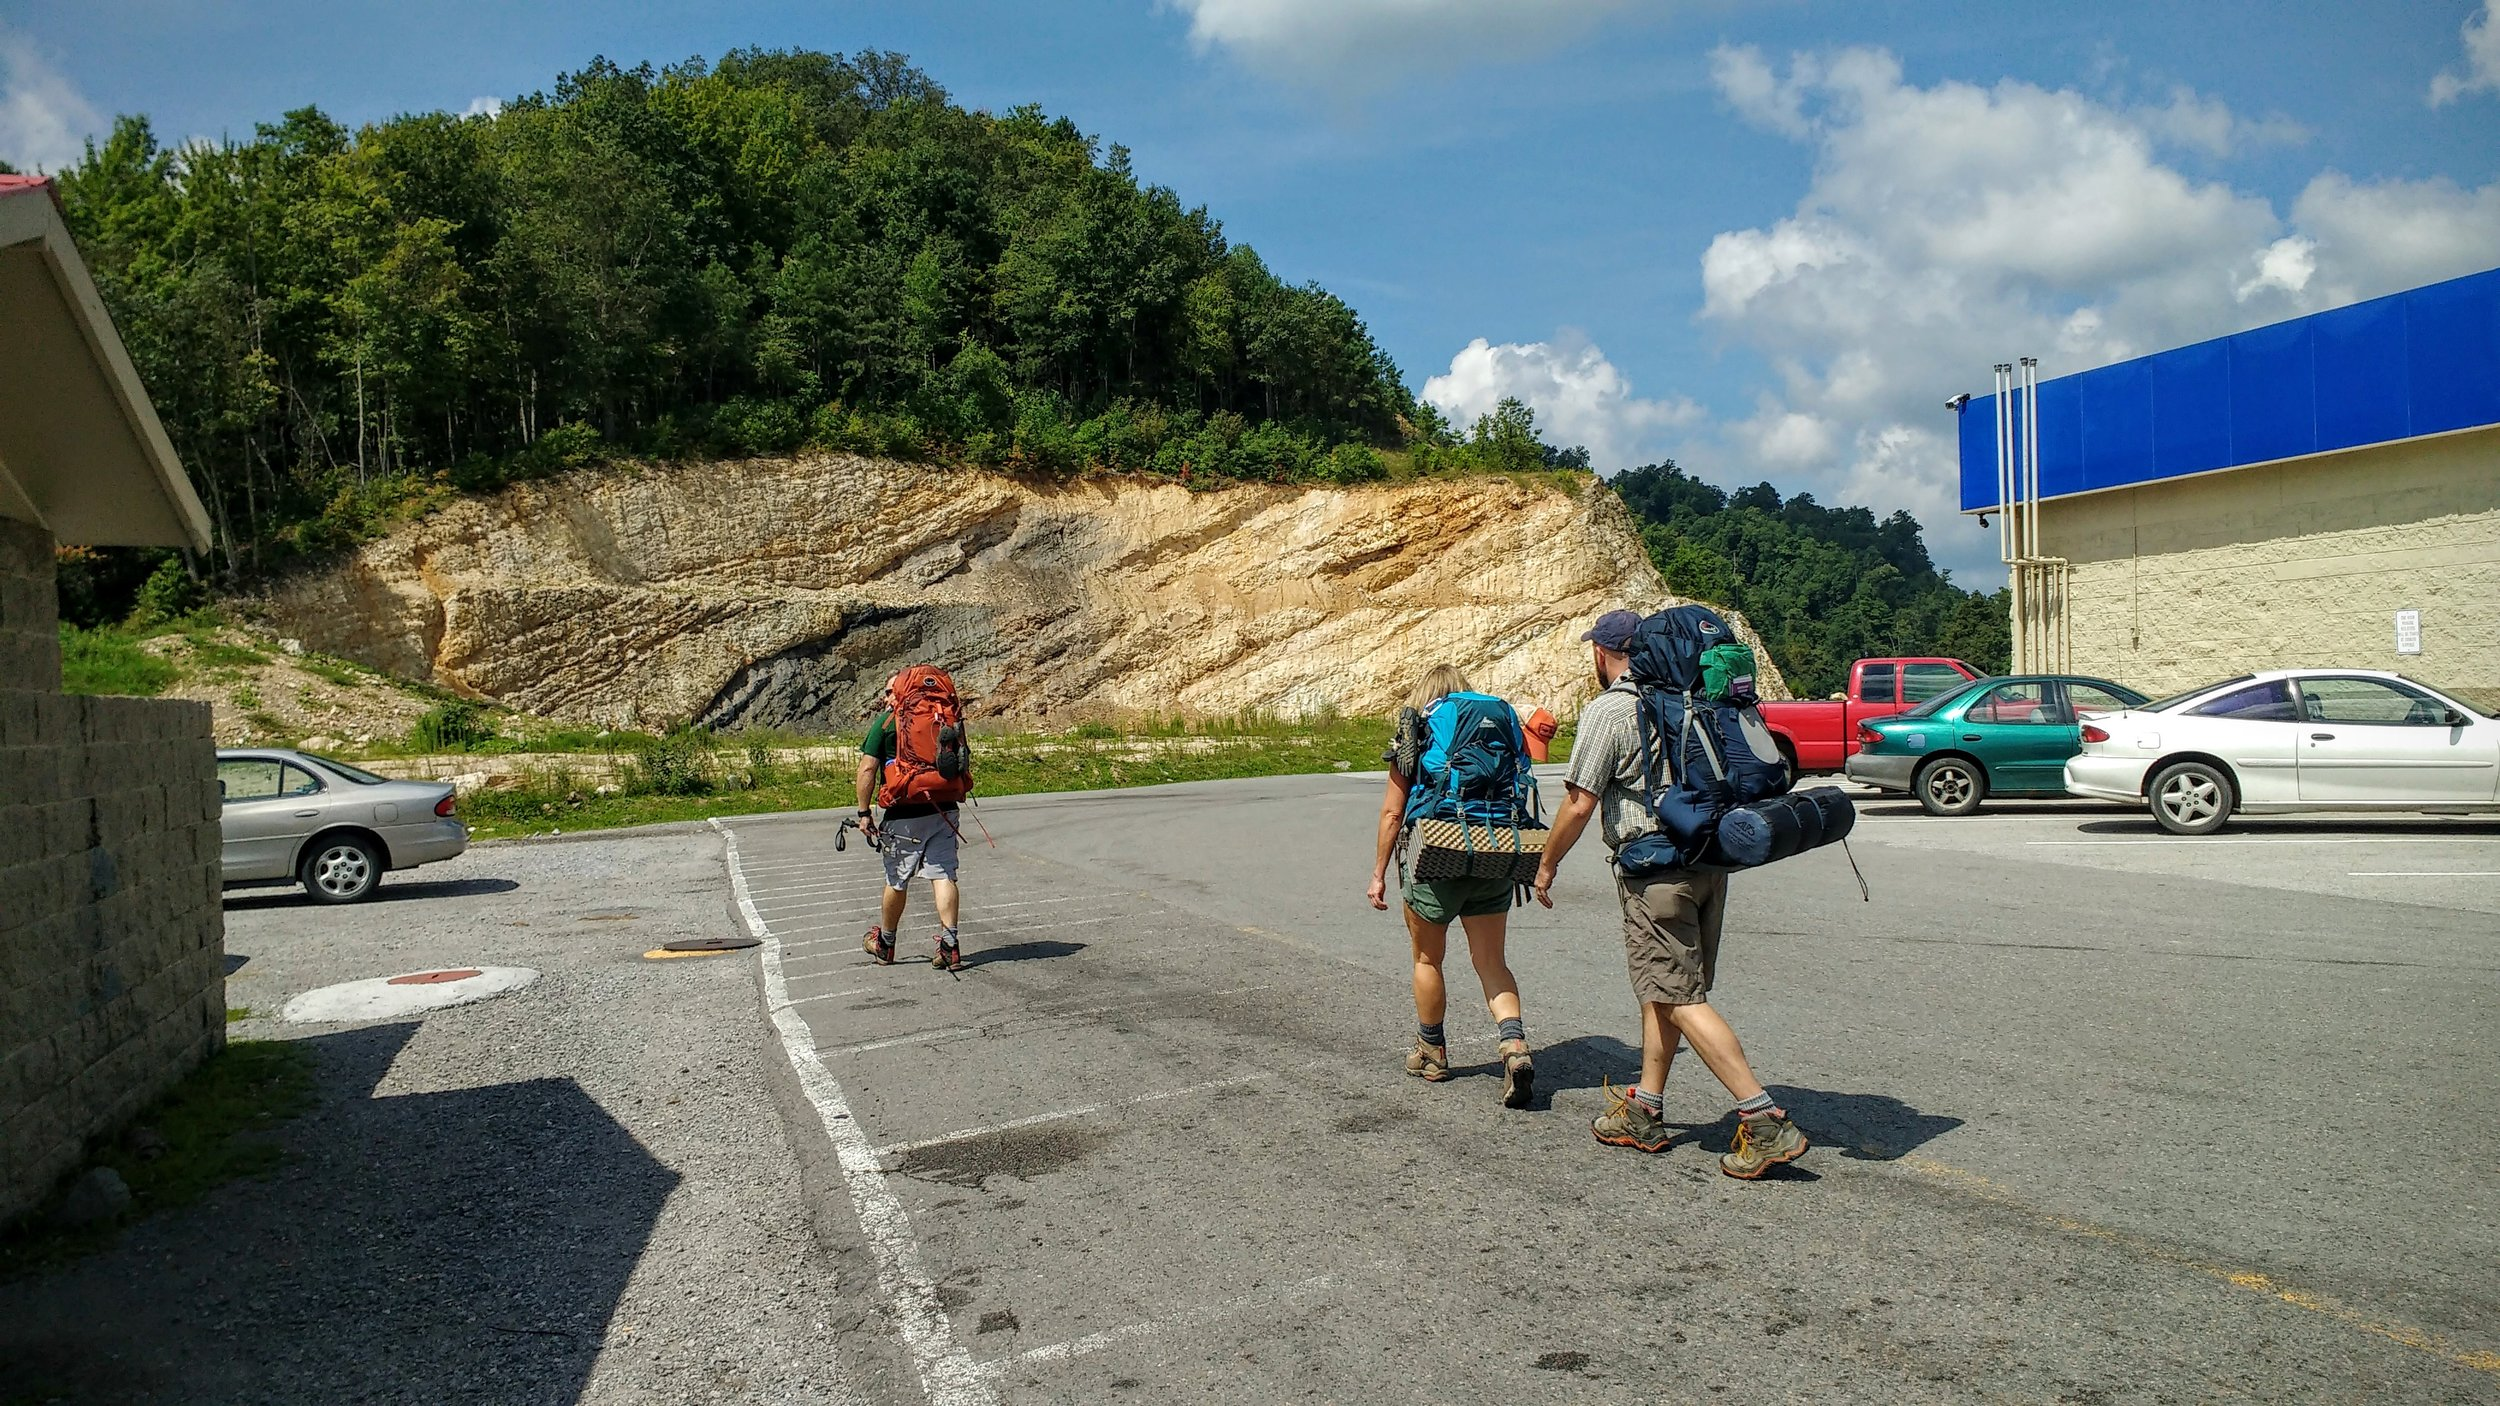 Heading out to Pine Mountain Trail from the Marathon gas station at Pound Gap